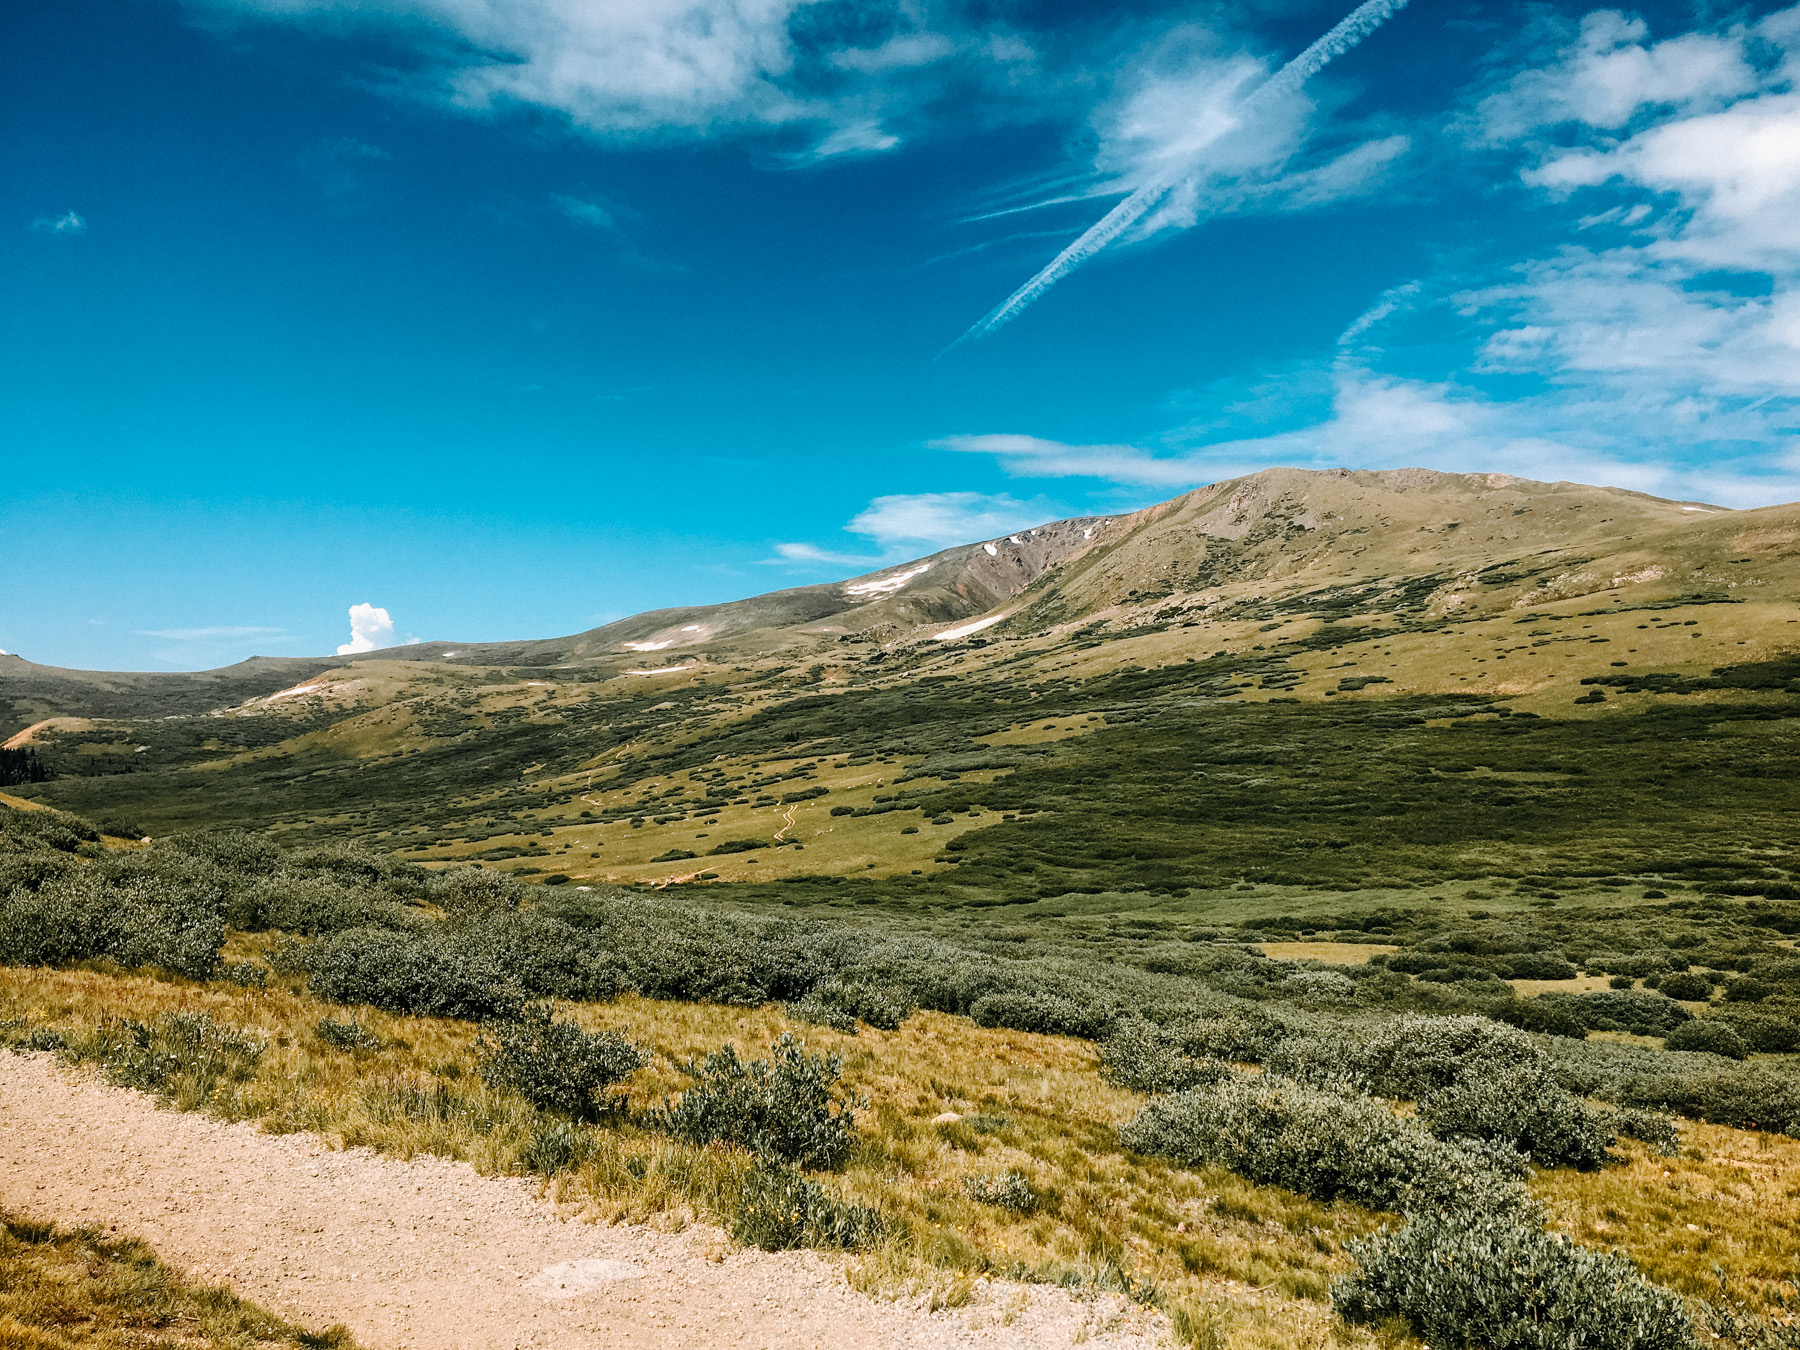 The 10 Best Hikes and Trails Near Denver | Square Top Lakes, Georgetown